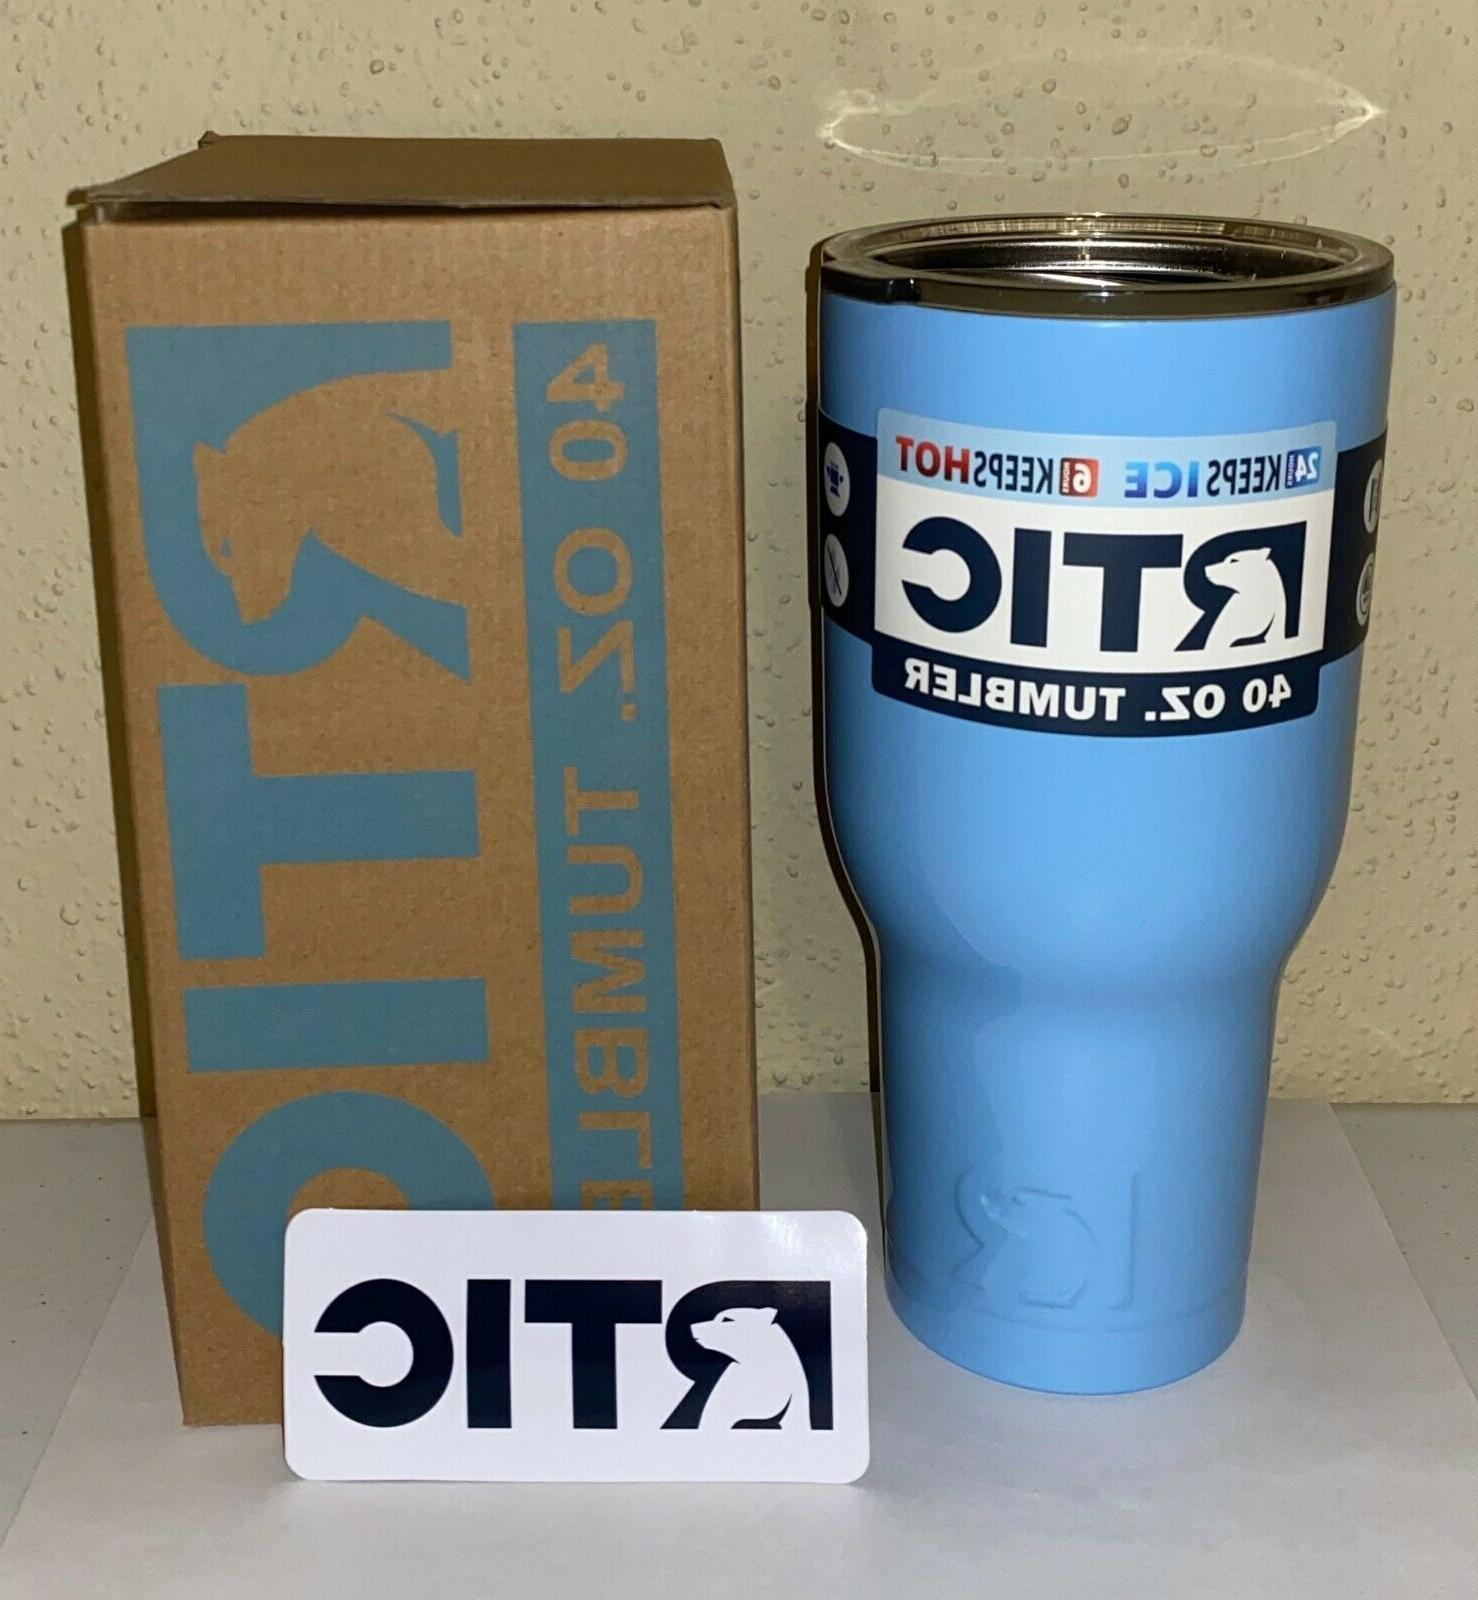 40oz tumbler with lid and decal